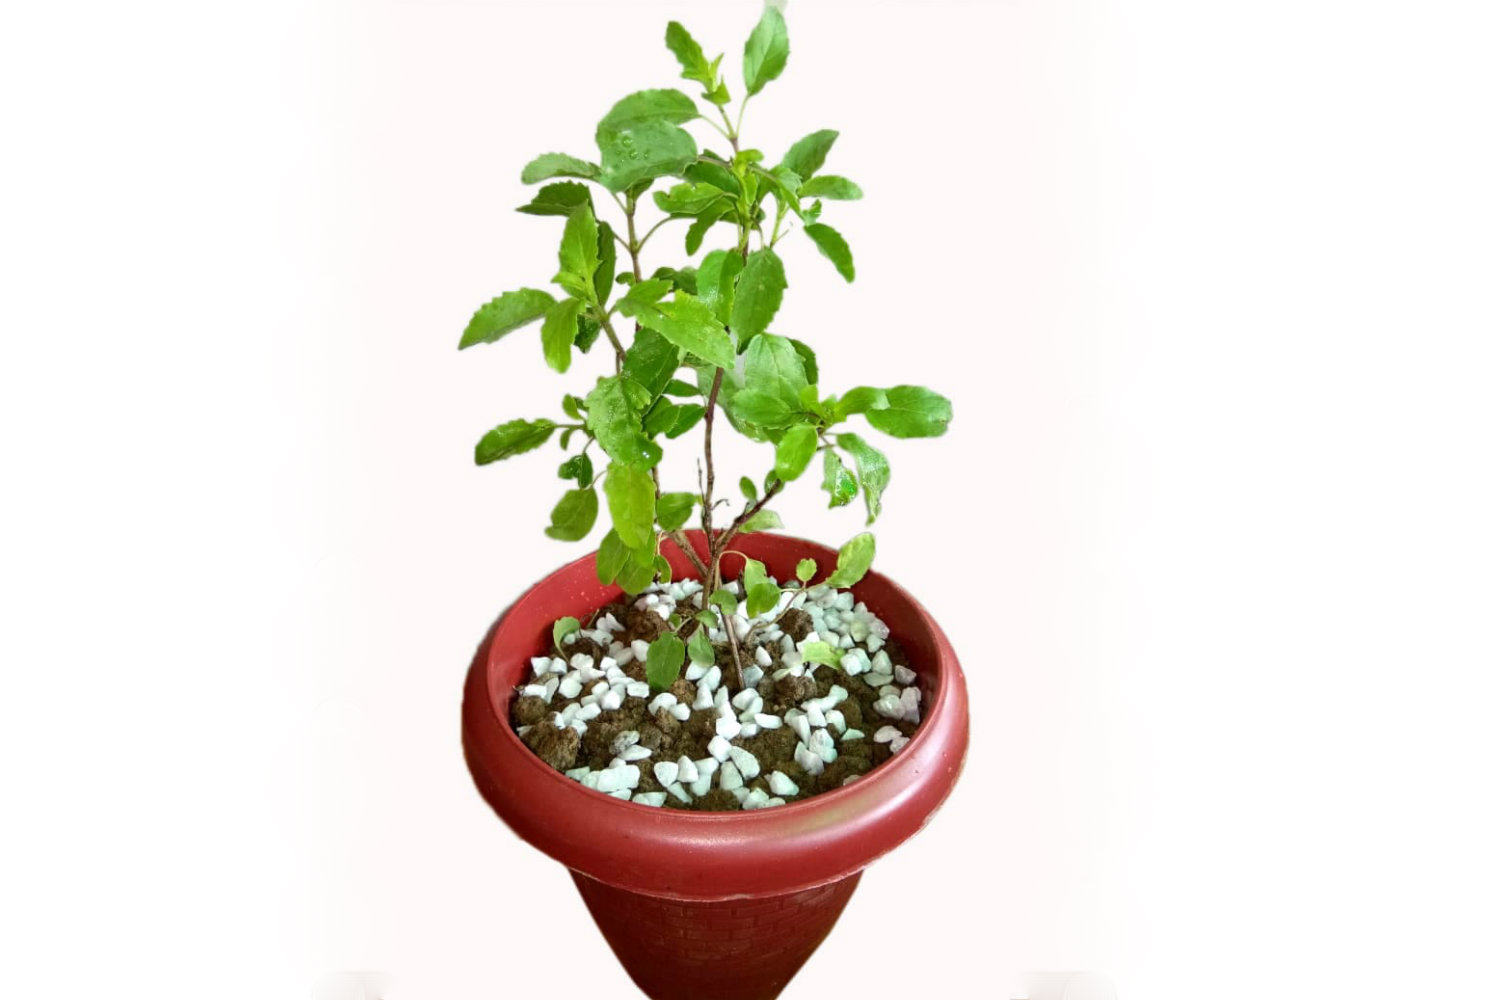 Side view of high quality Tulsi plant from Green Decor